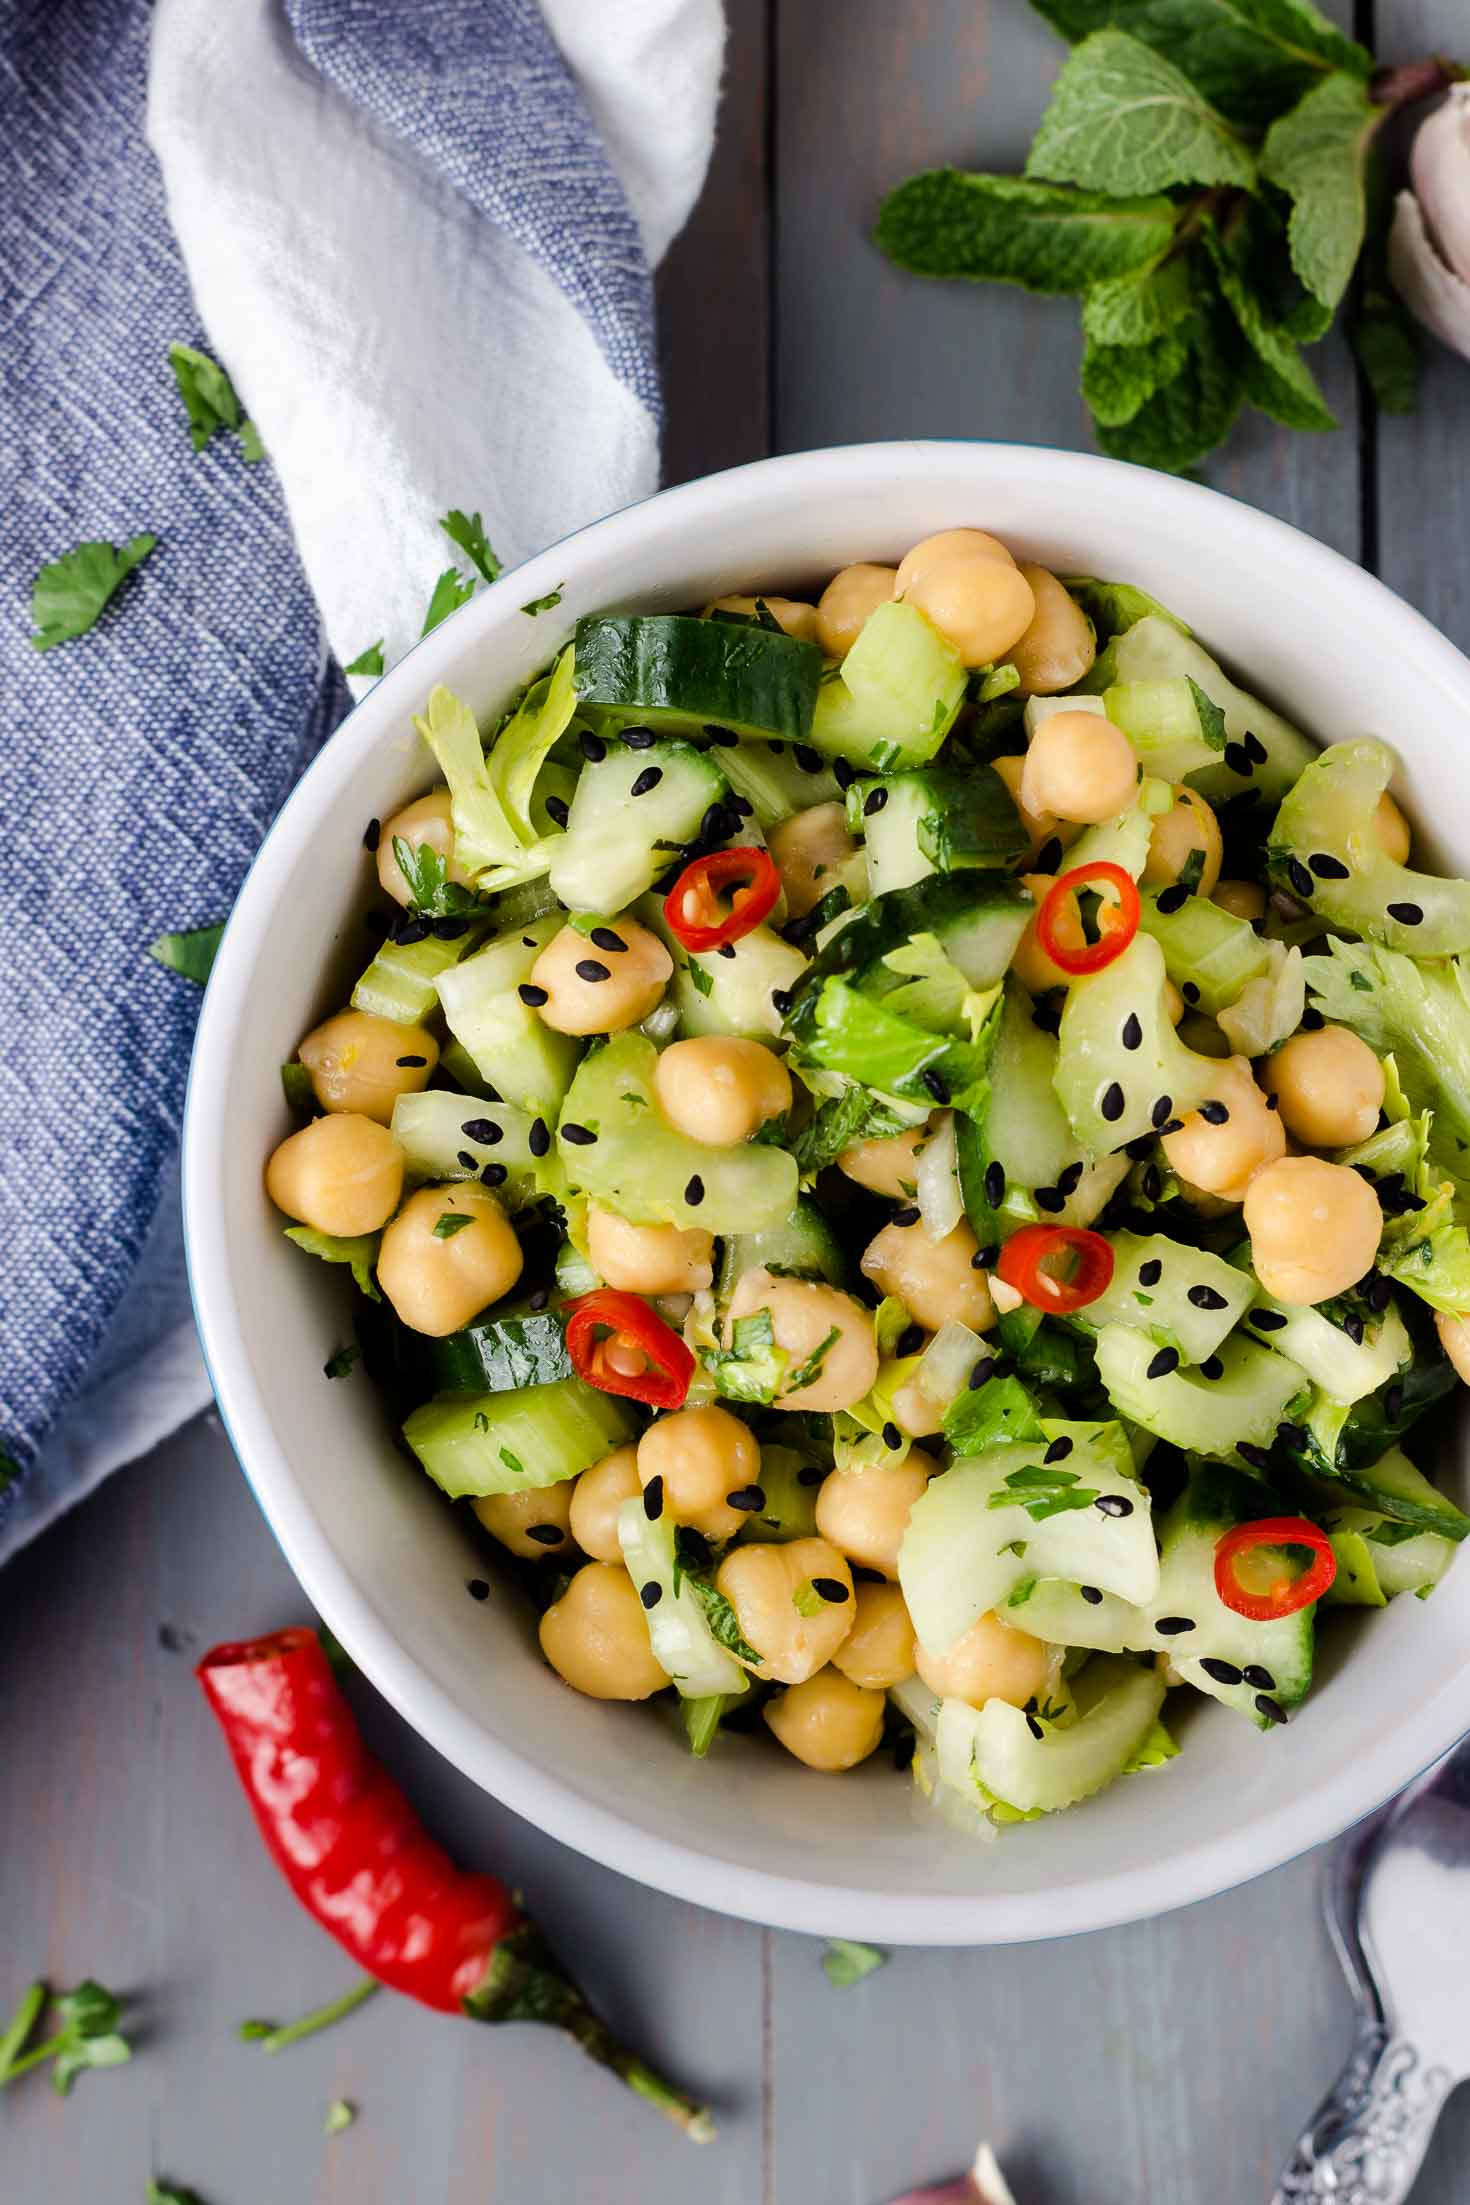 Celery Cucumber Chickpea Salad-top view in a bowl-garnished with black sesame seeds and chopped red chili pepper